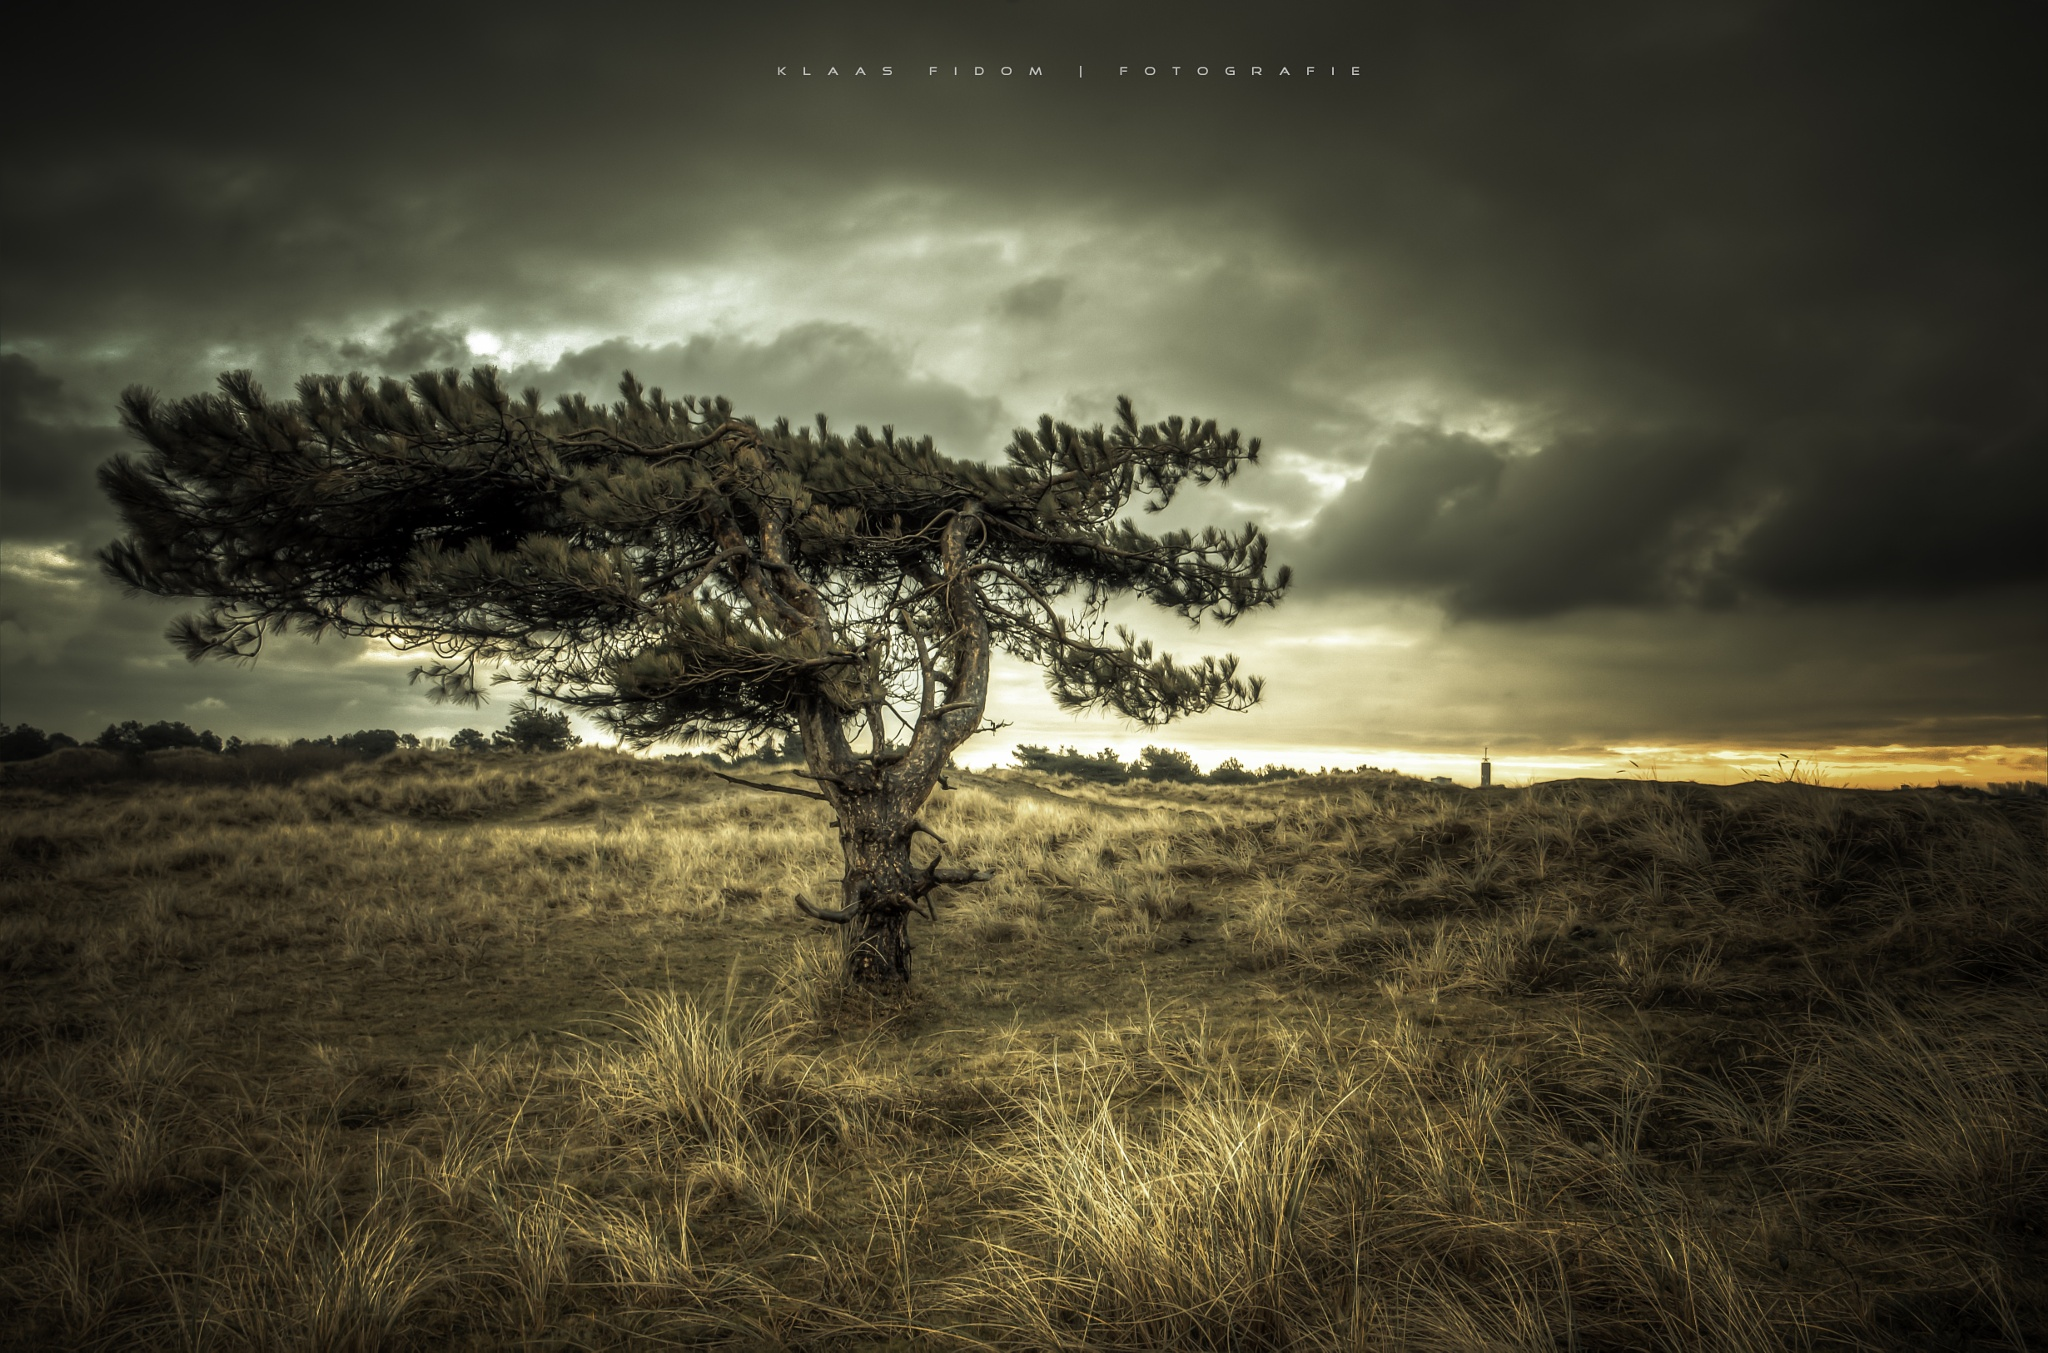 Lonely by KlaasFidom